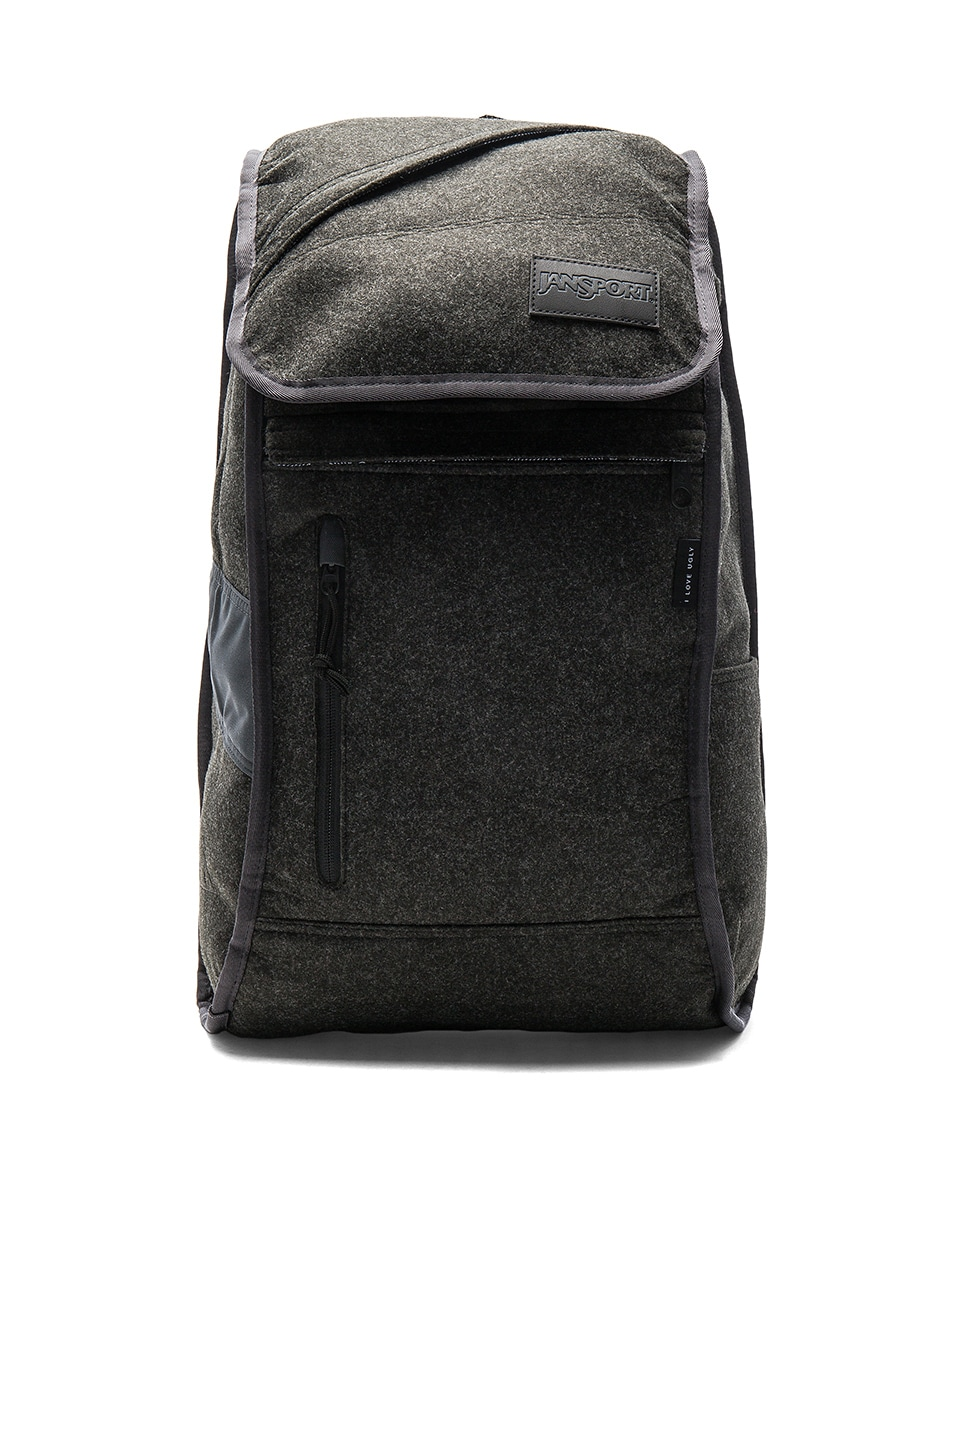 x I Love Ugly Iron Sight Backpack by Jansport